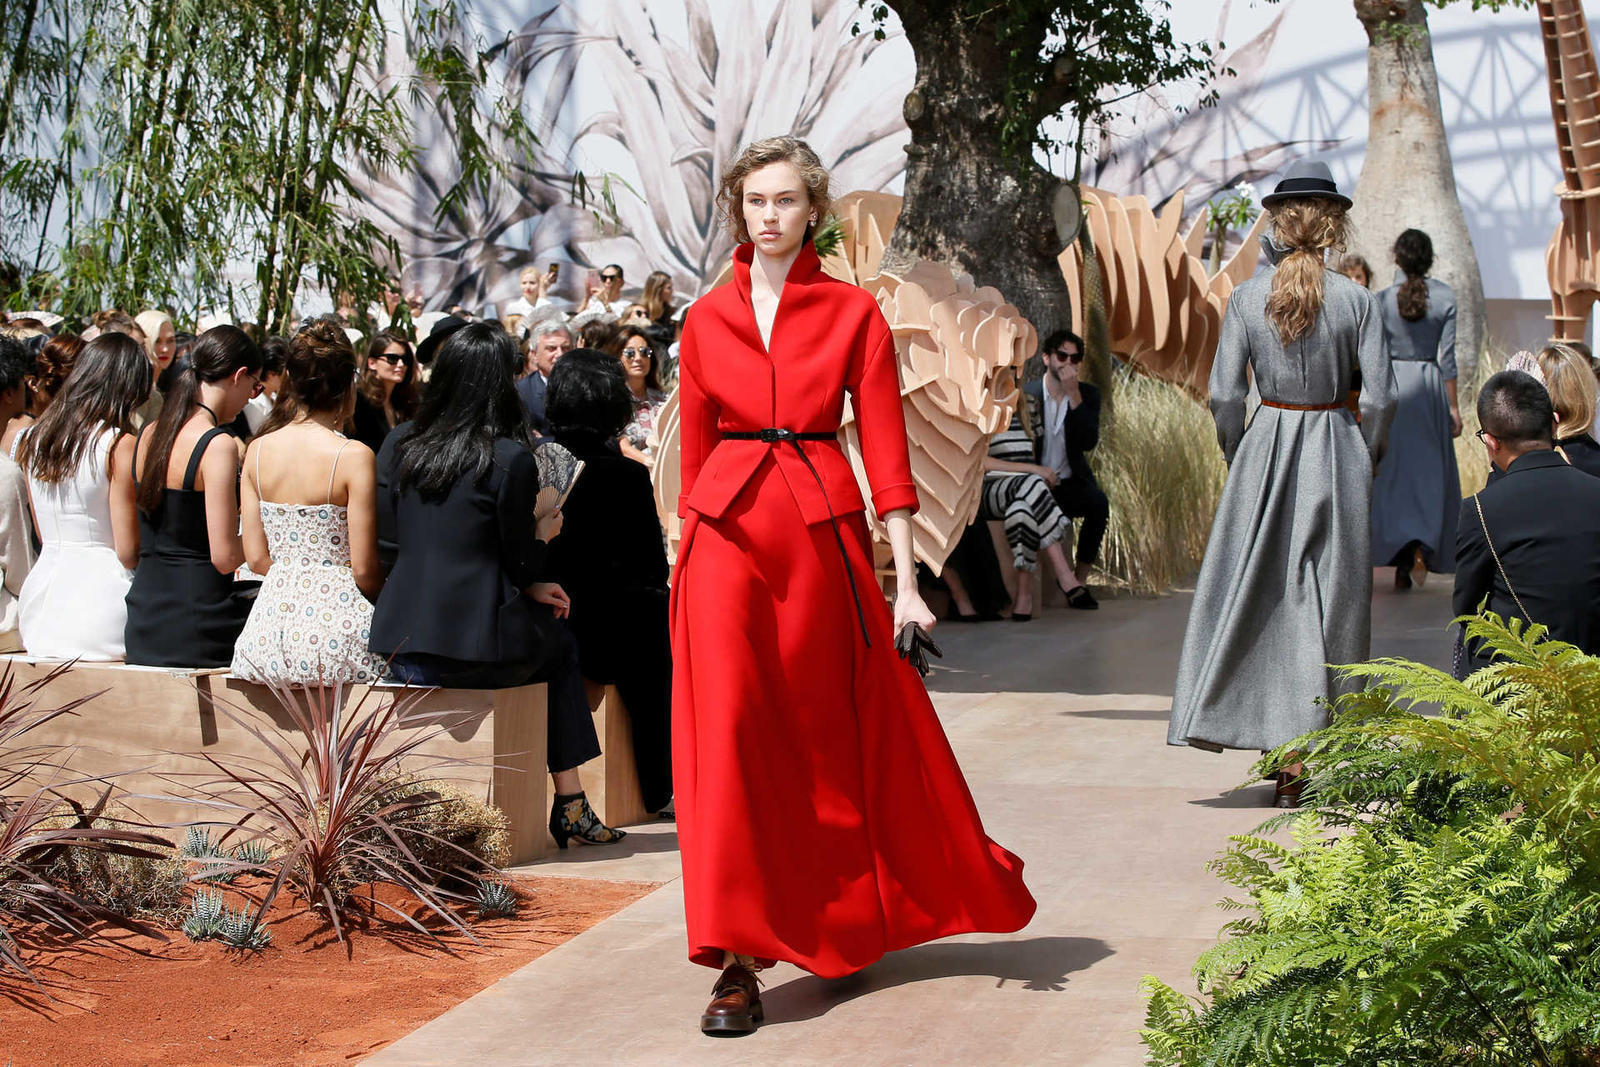 A model presents a creation by Italian designer Maria Grazia Chiuri as part of her Haute Couture Fall/Winter 2017/2018 collection for fashion house Dior in Paris